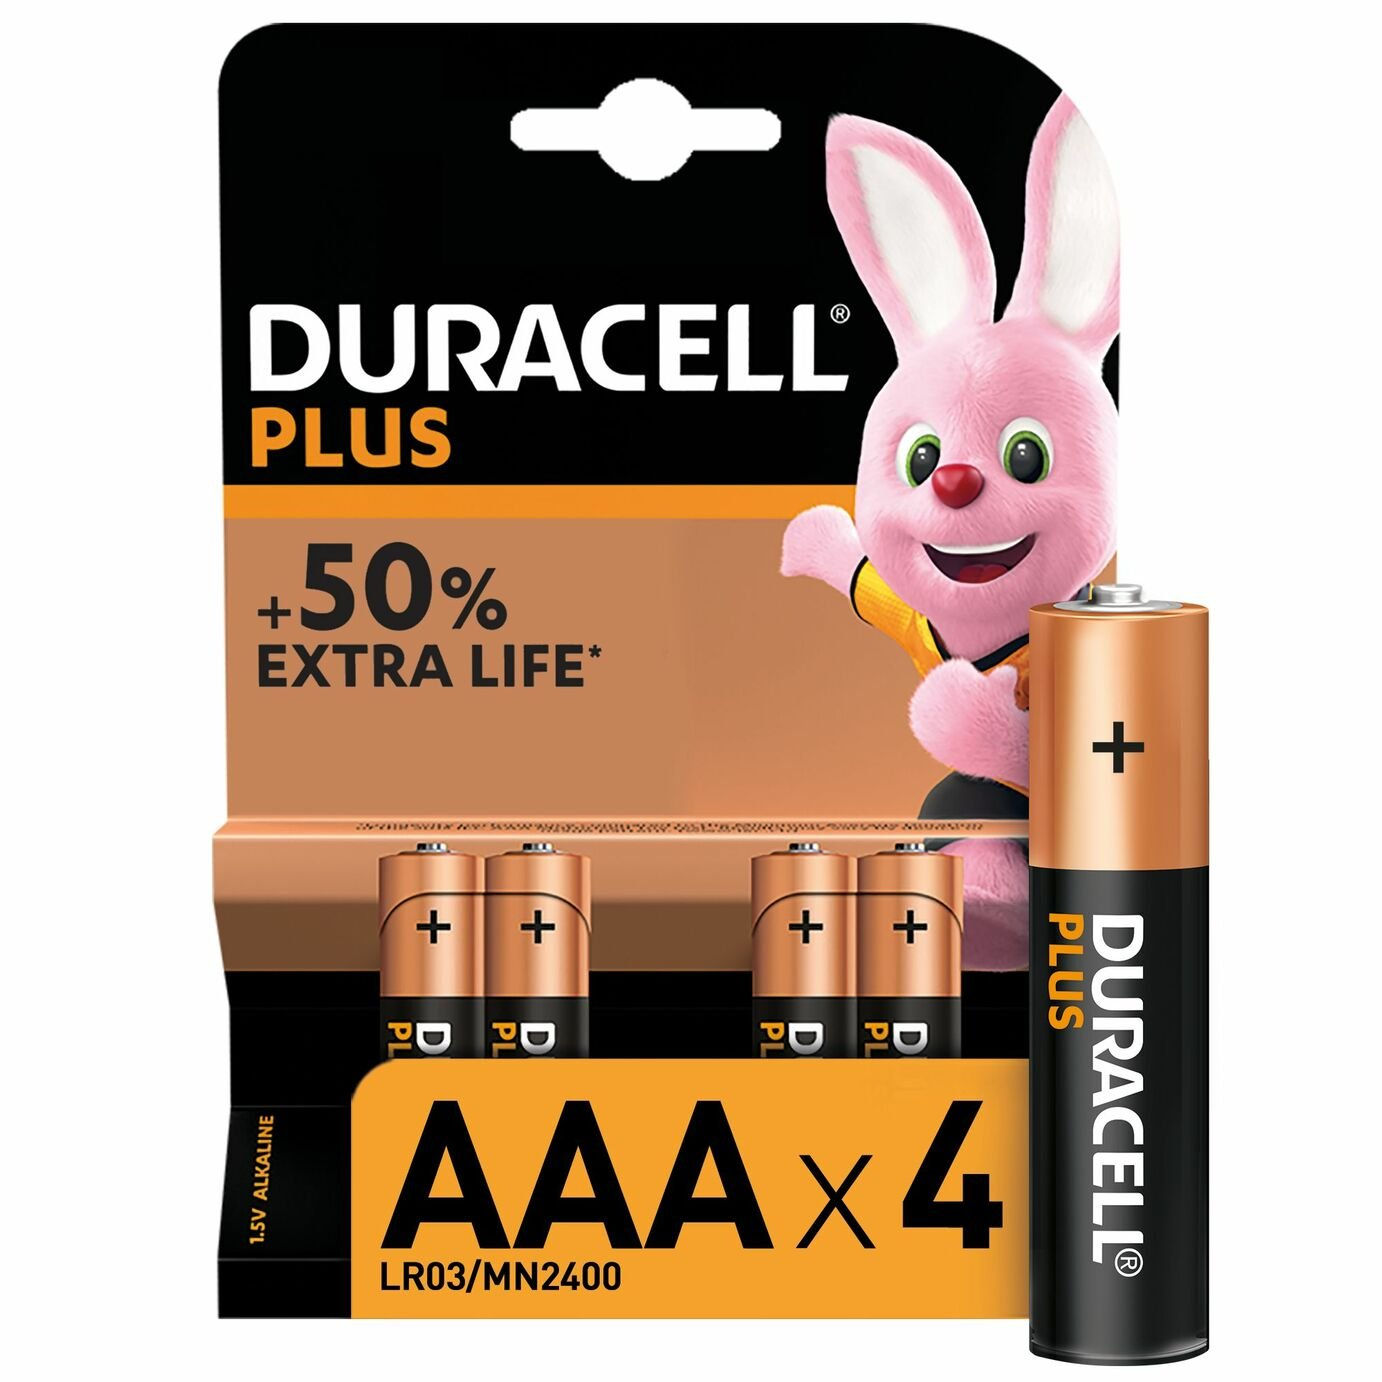 Duracell Plus Alkaline AAA Batteries - Pack of 4 from Duracell